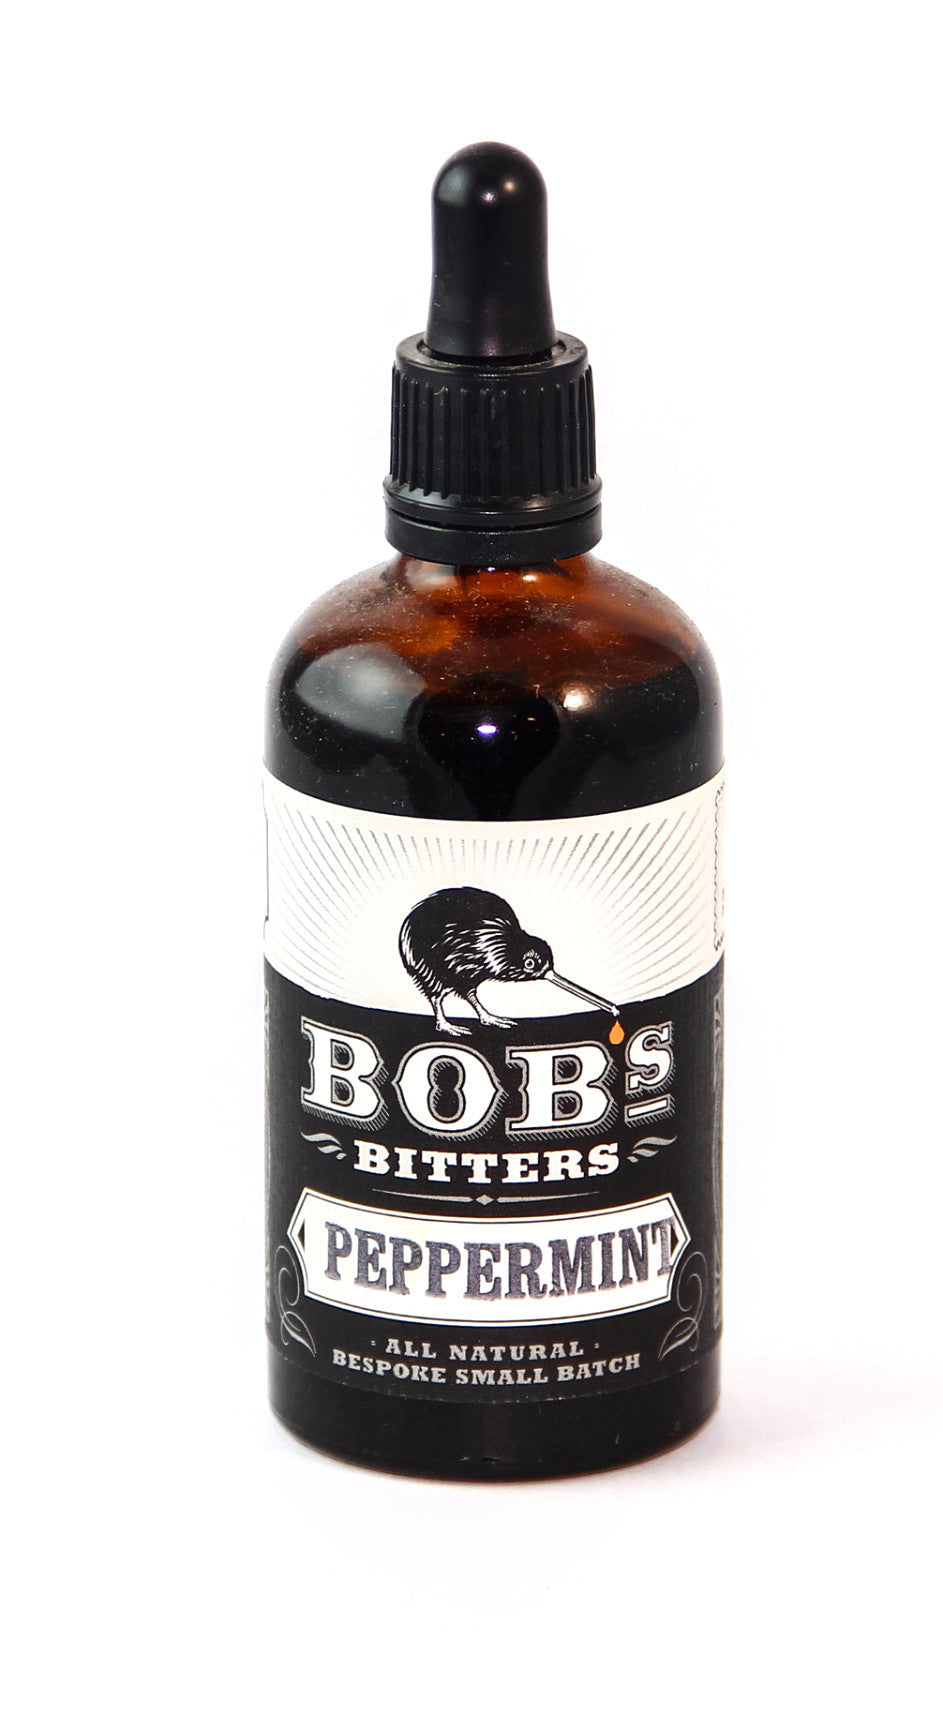 Bob's Peppermint Bitters-Bitters, Syrups and Shrubs-The Meadow